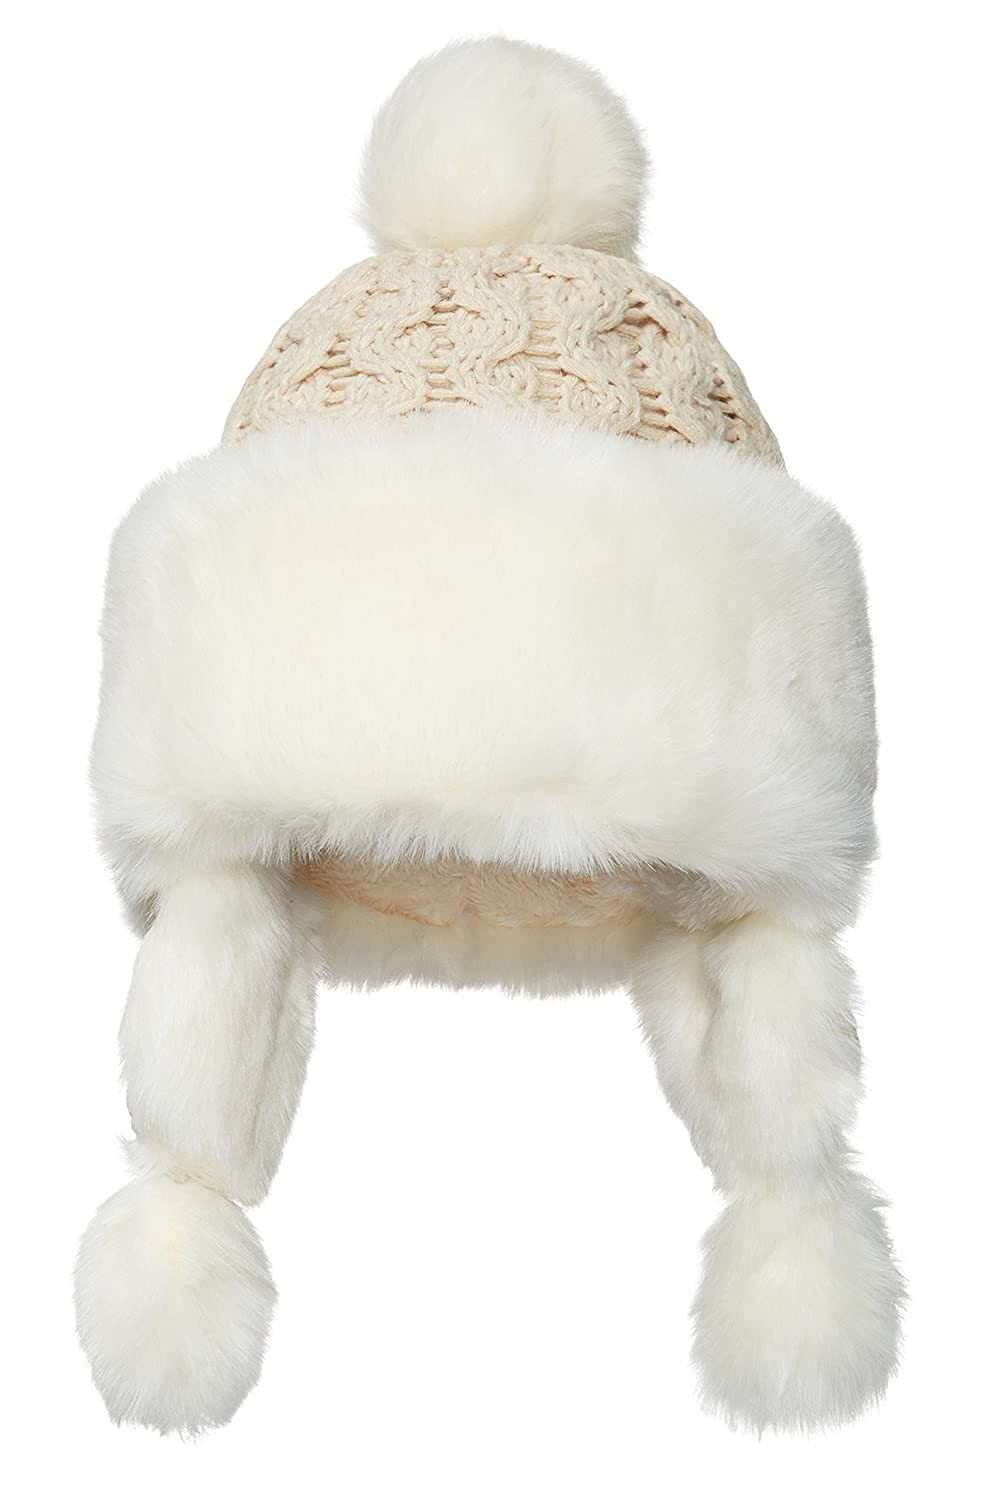 9c92a2cb3224f0 Nothing But Love Women Earflap Winter Hat With Faux Fur Trim Pom Pom Cable  Knit Trapper Ushanka Cap (Beige/White) at Amazon Women's Clothing store: